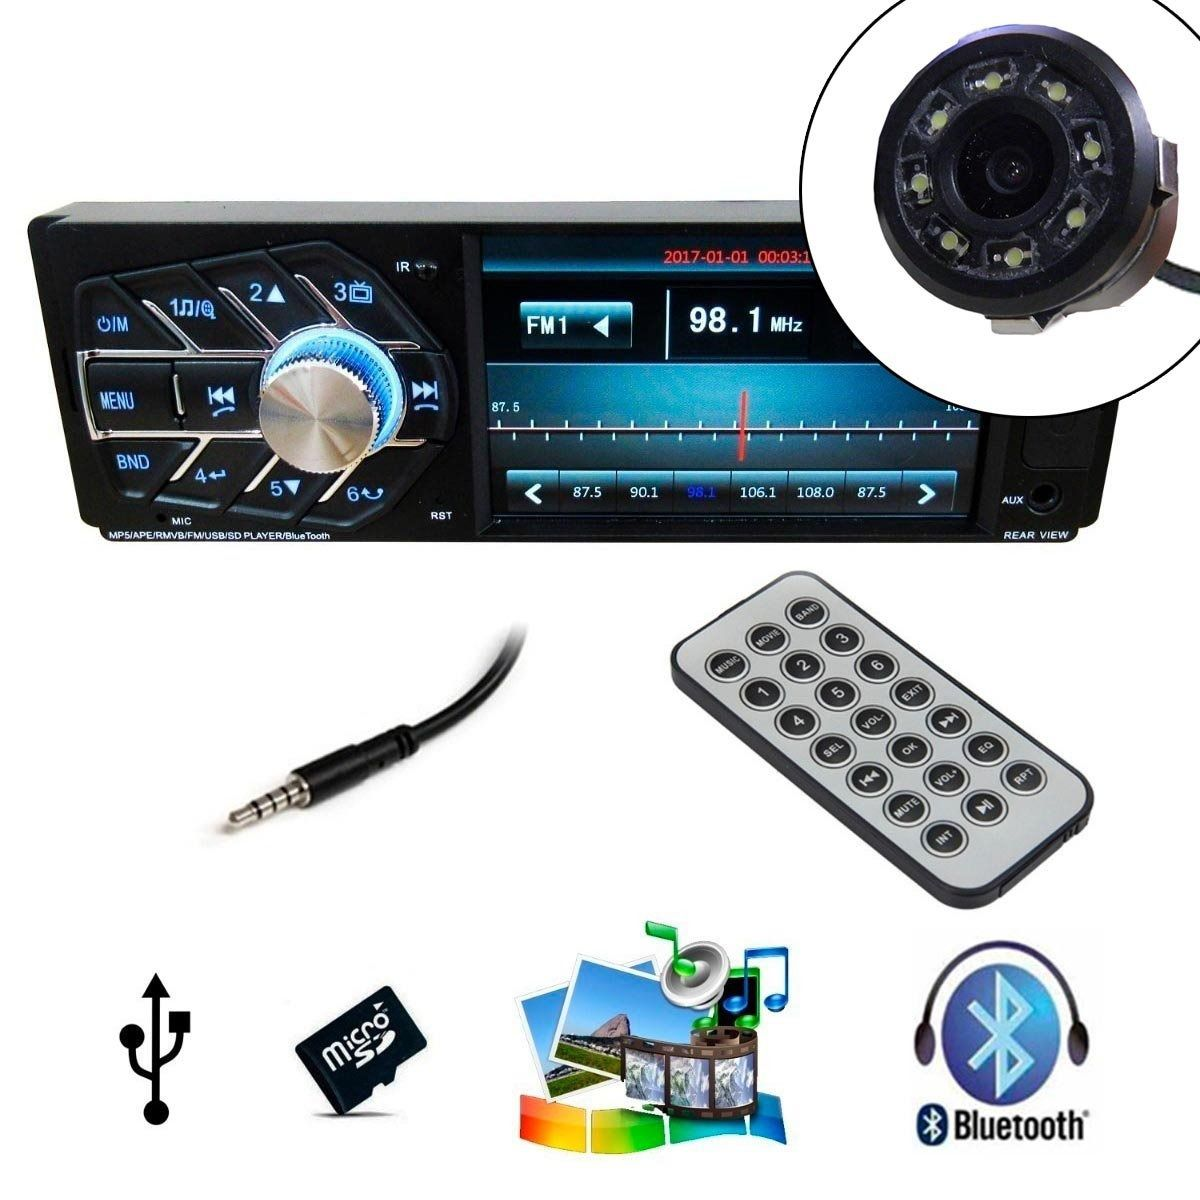 Radio Com Camera De Re Automotivo Bluetooth Mp5 Lcd Controle (4124/COM Camera de Ré)